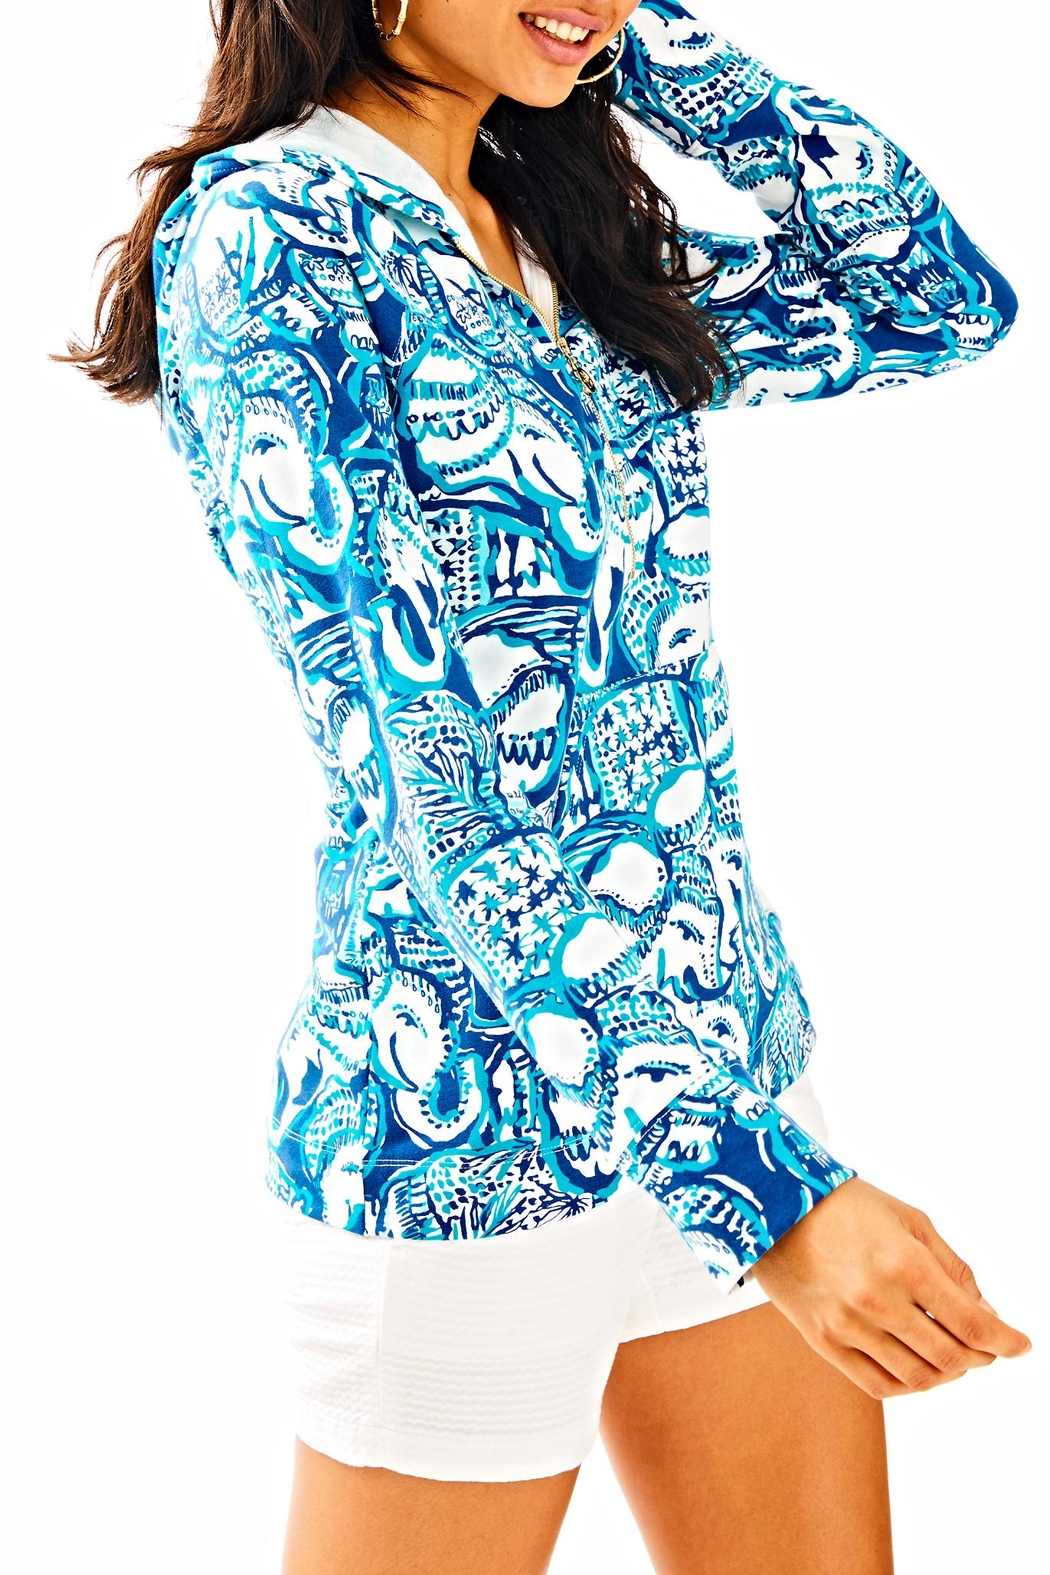 Lilly Pulitzer Luxletic Hooded Popover Top - Main Image